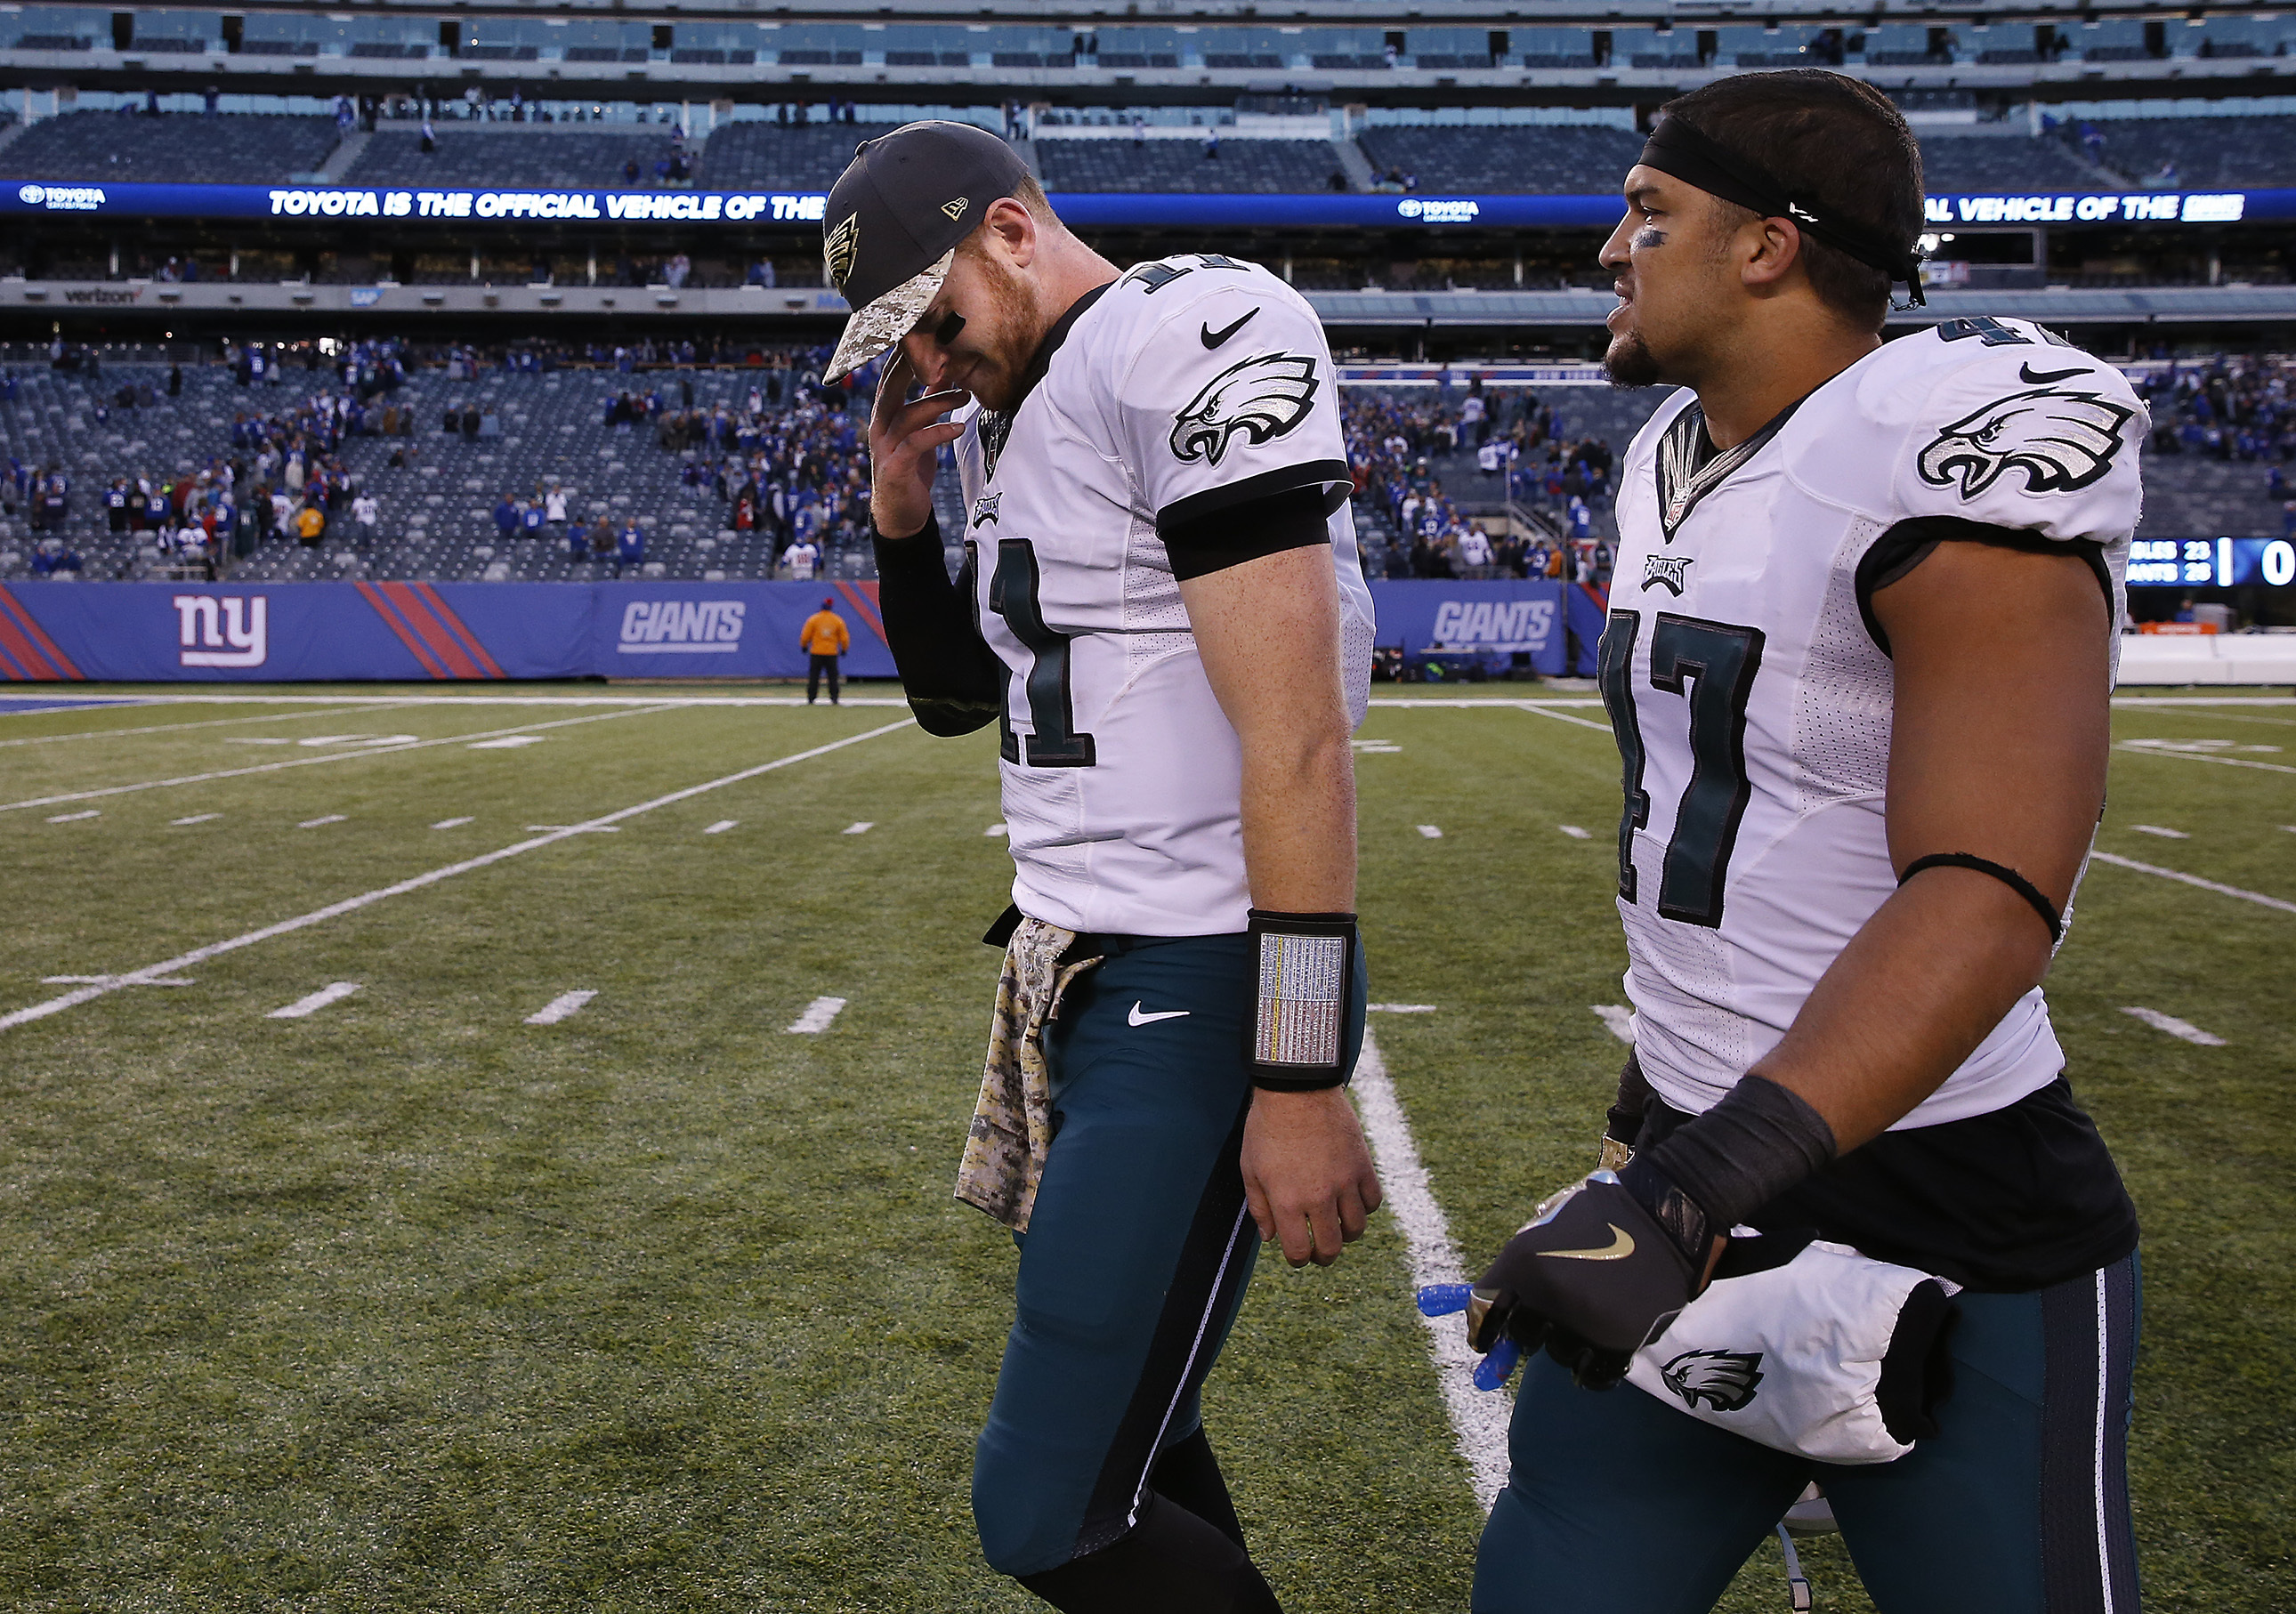 Eagles' Carson Wentz, left, and Trey Burton, right, walk off the field together after the loss to the Giants.